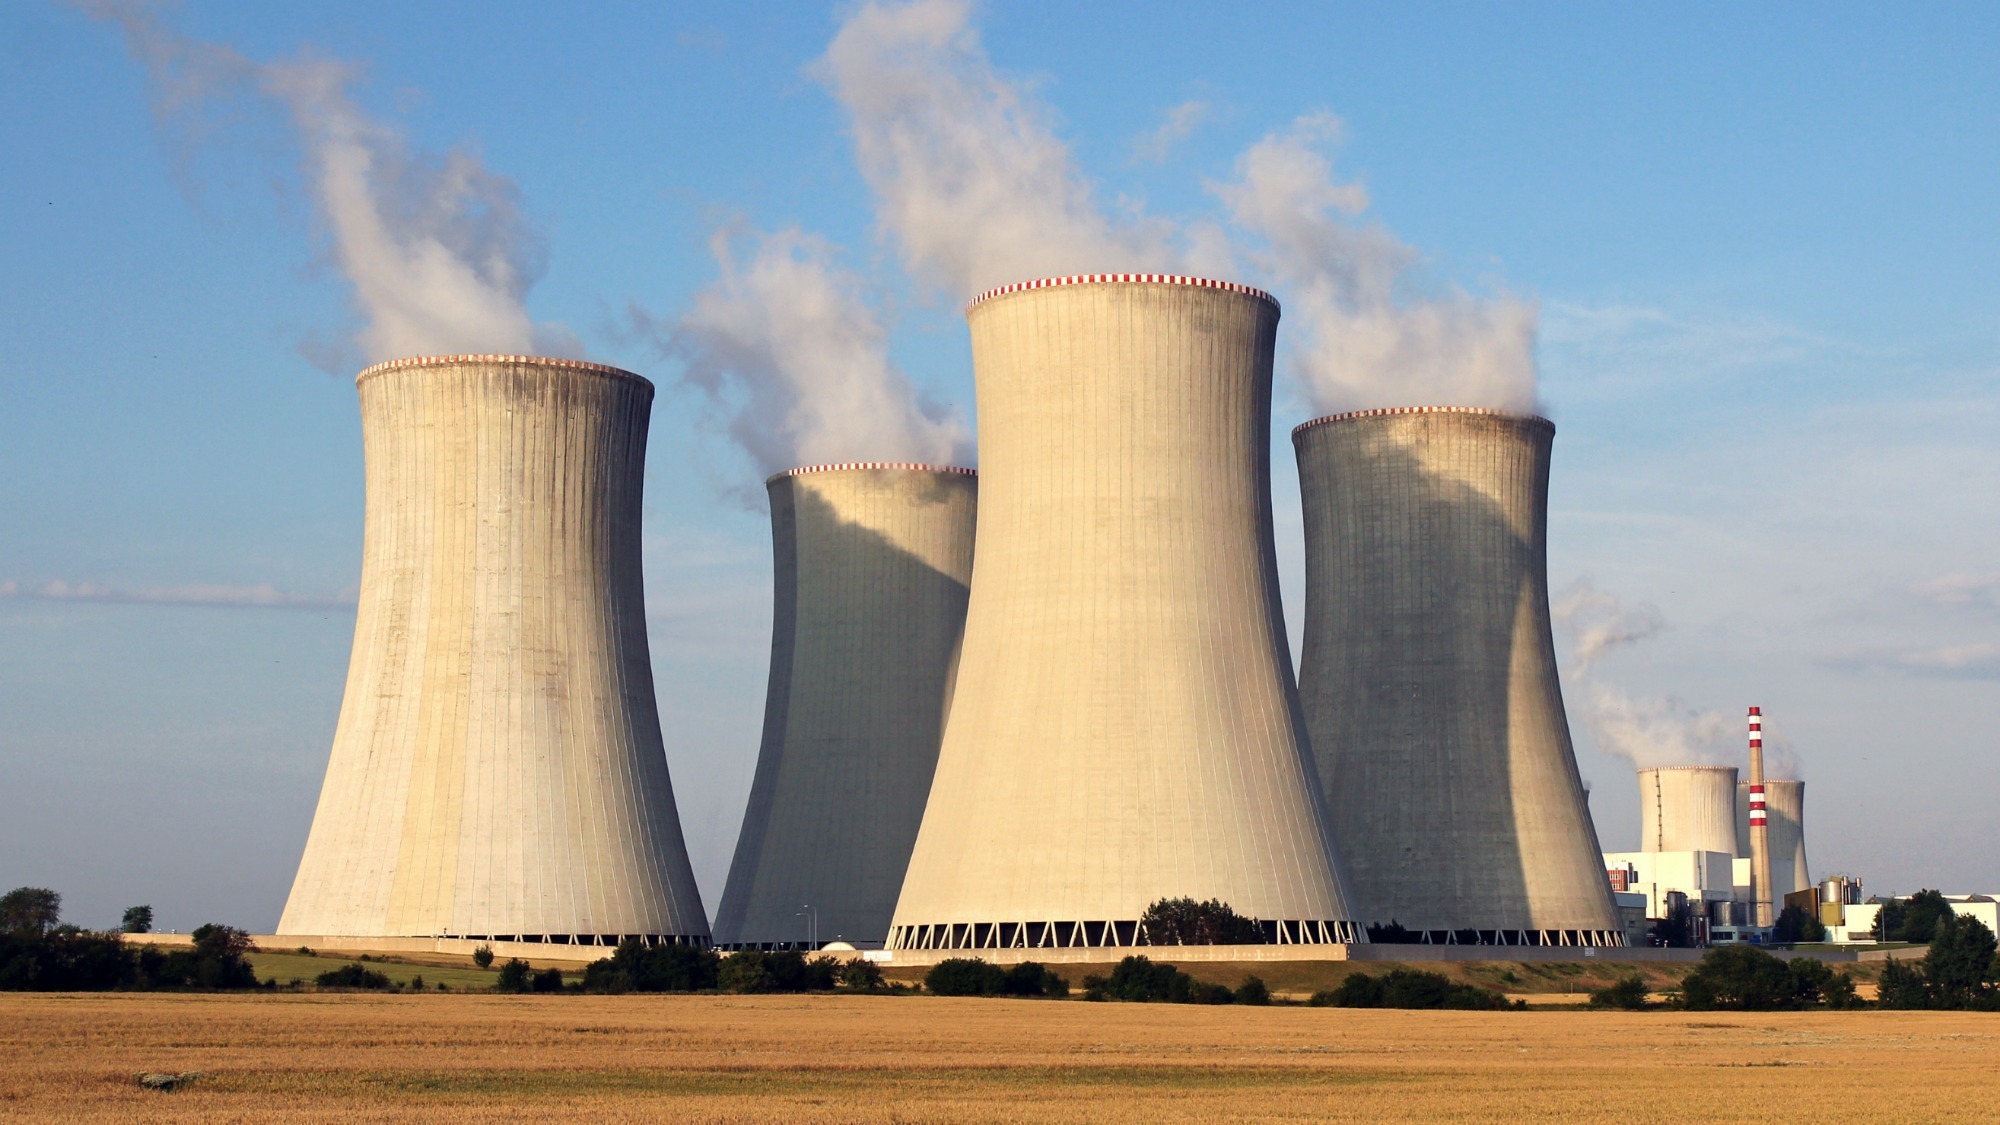 Nuclear power plant cooling towers